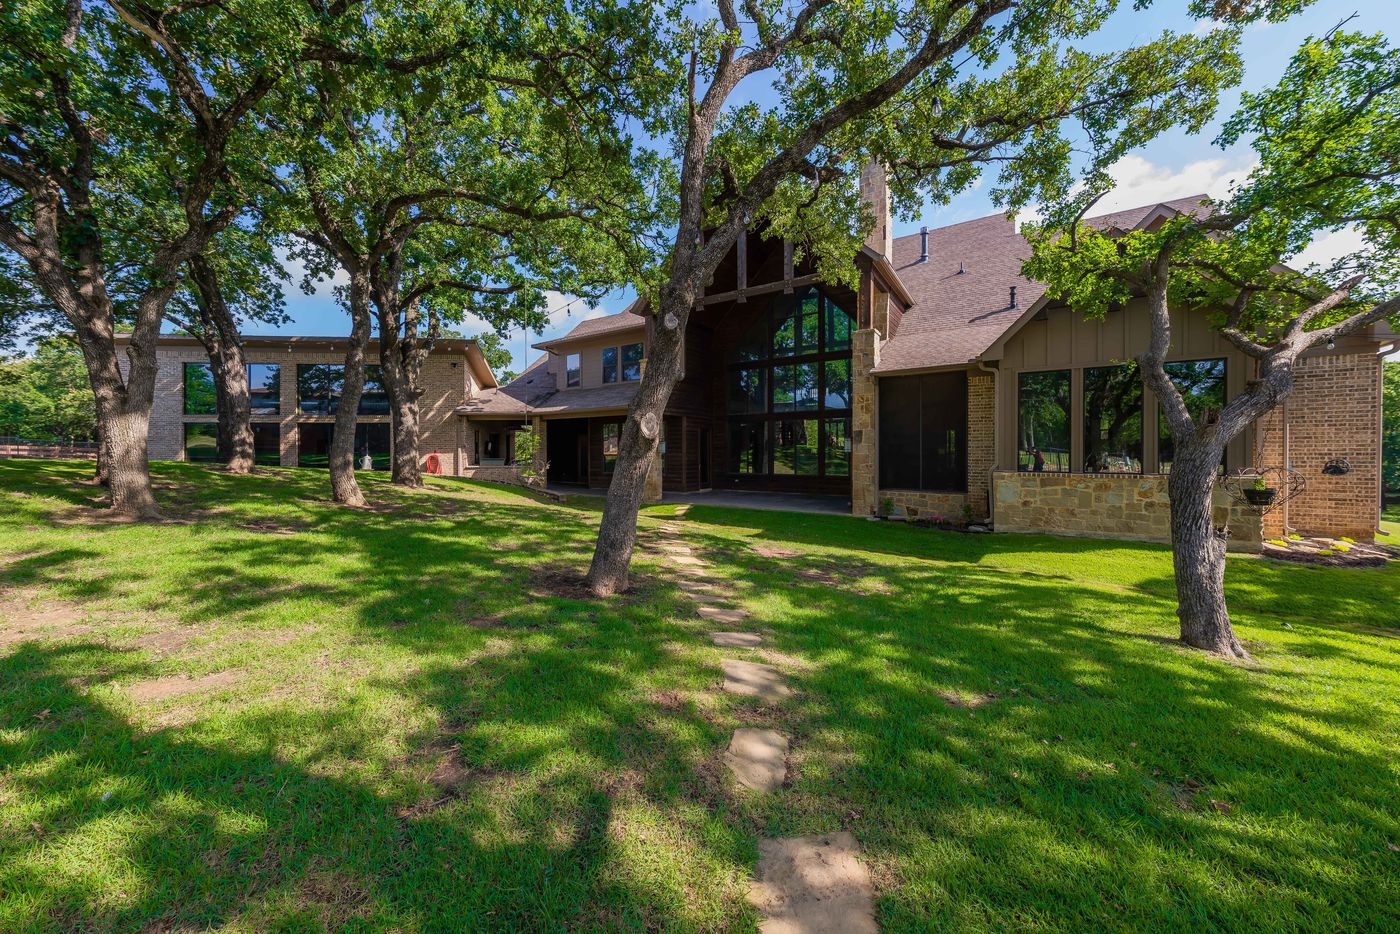 Take a look at the home at 2378 E. Hickory Hill Road in Argyle.